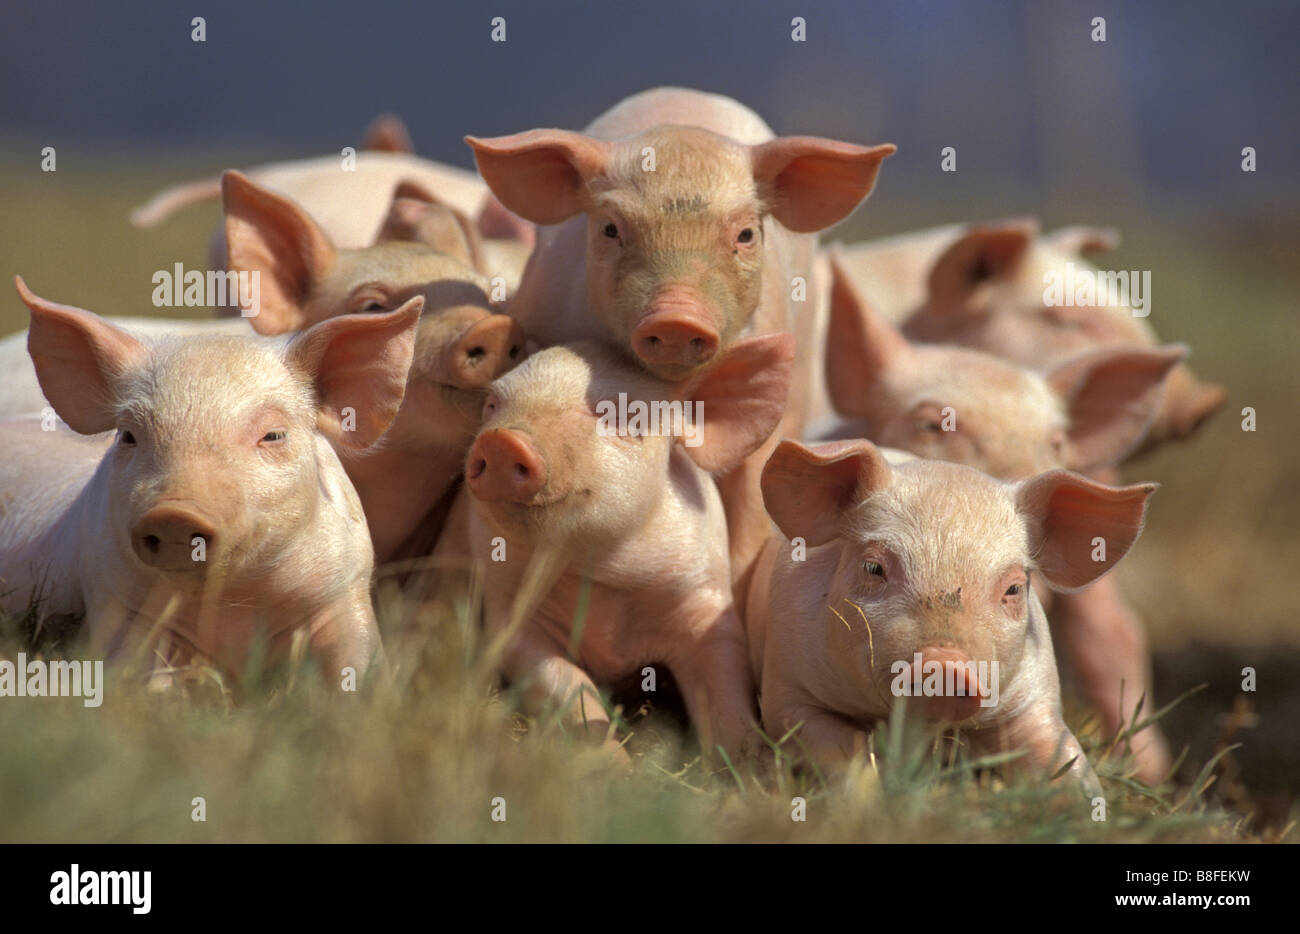 Domestic Pig (Sus scrofa domestica). Pile of piglets looking into the camera - Stock Image